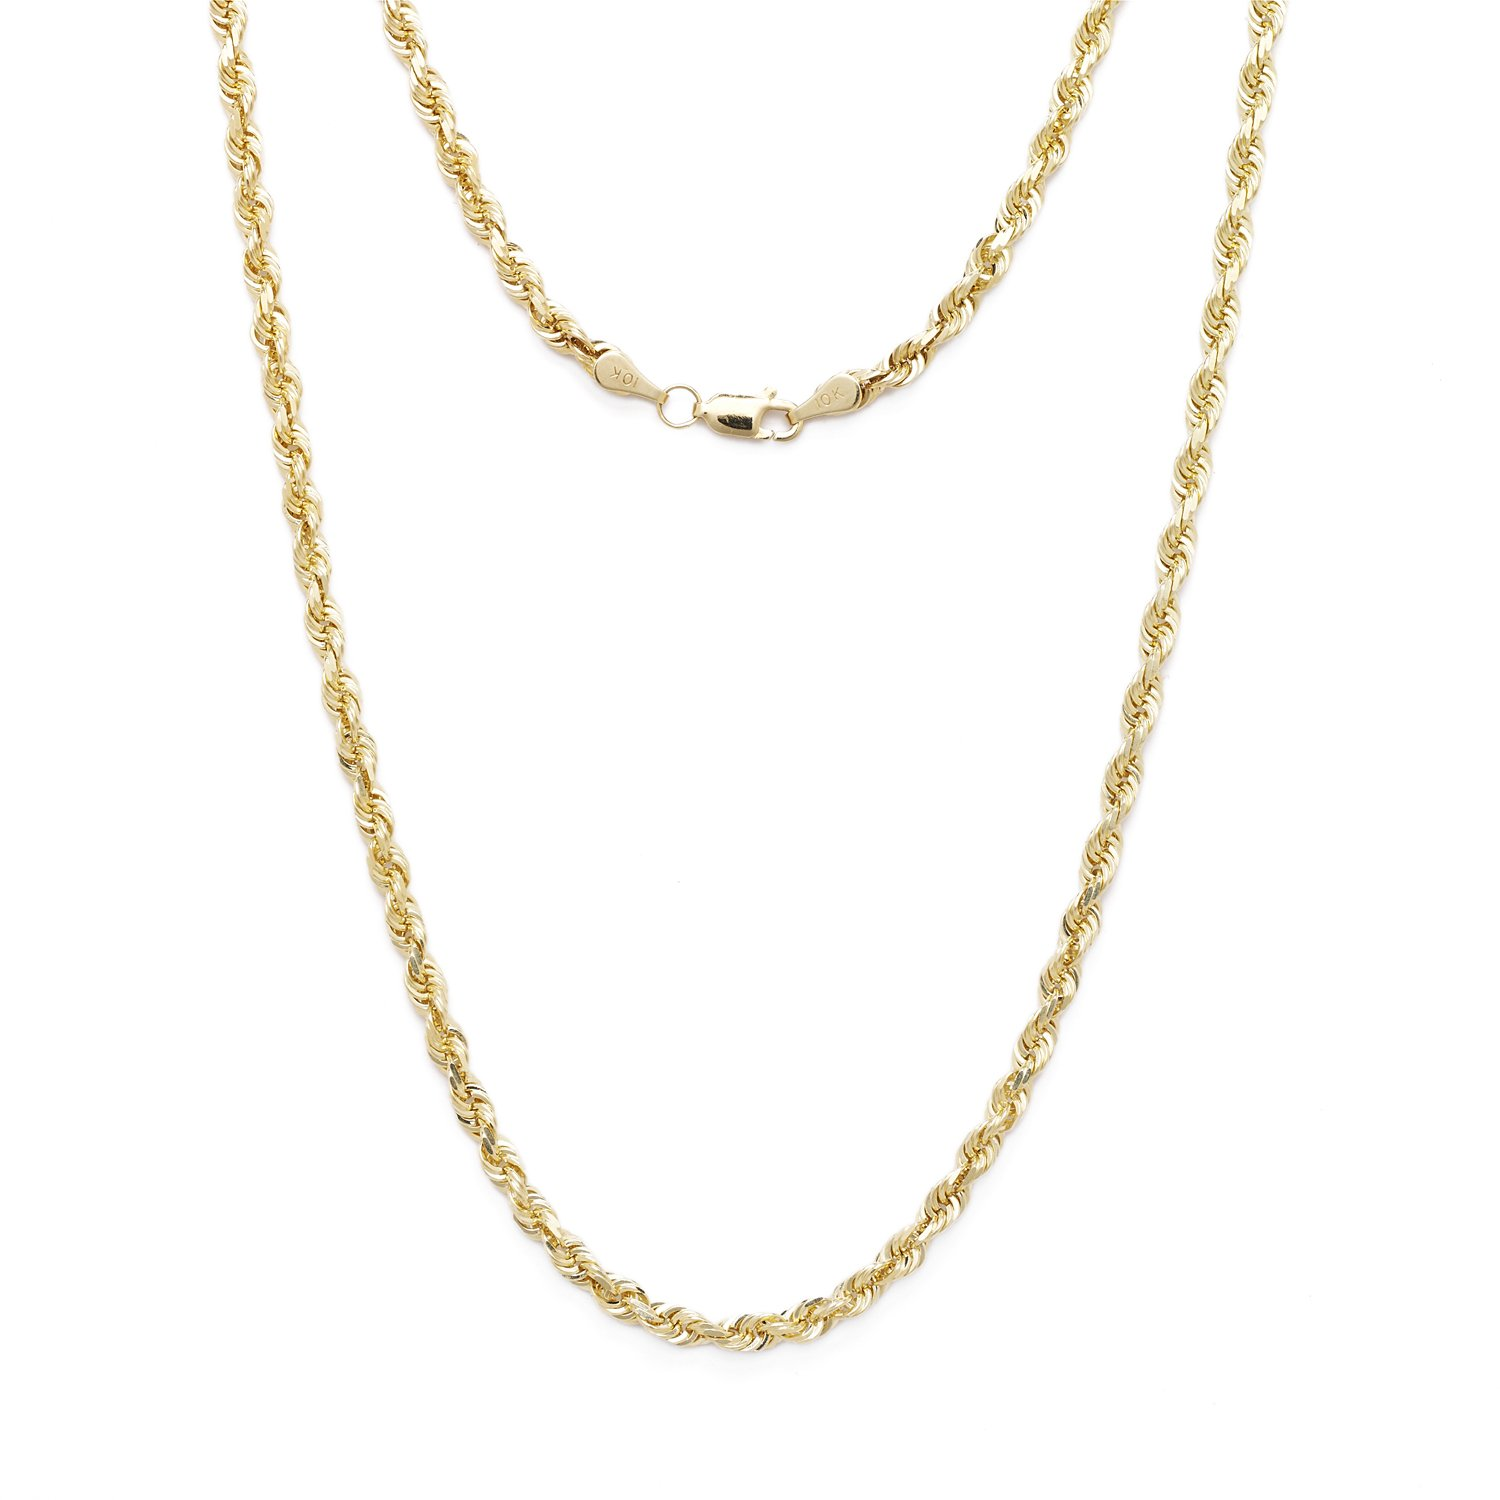 16 Inch 10k Yellow Gold Solid Diamond Cut Rope Chain Necklace 3mm